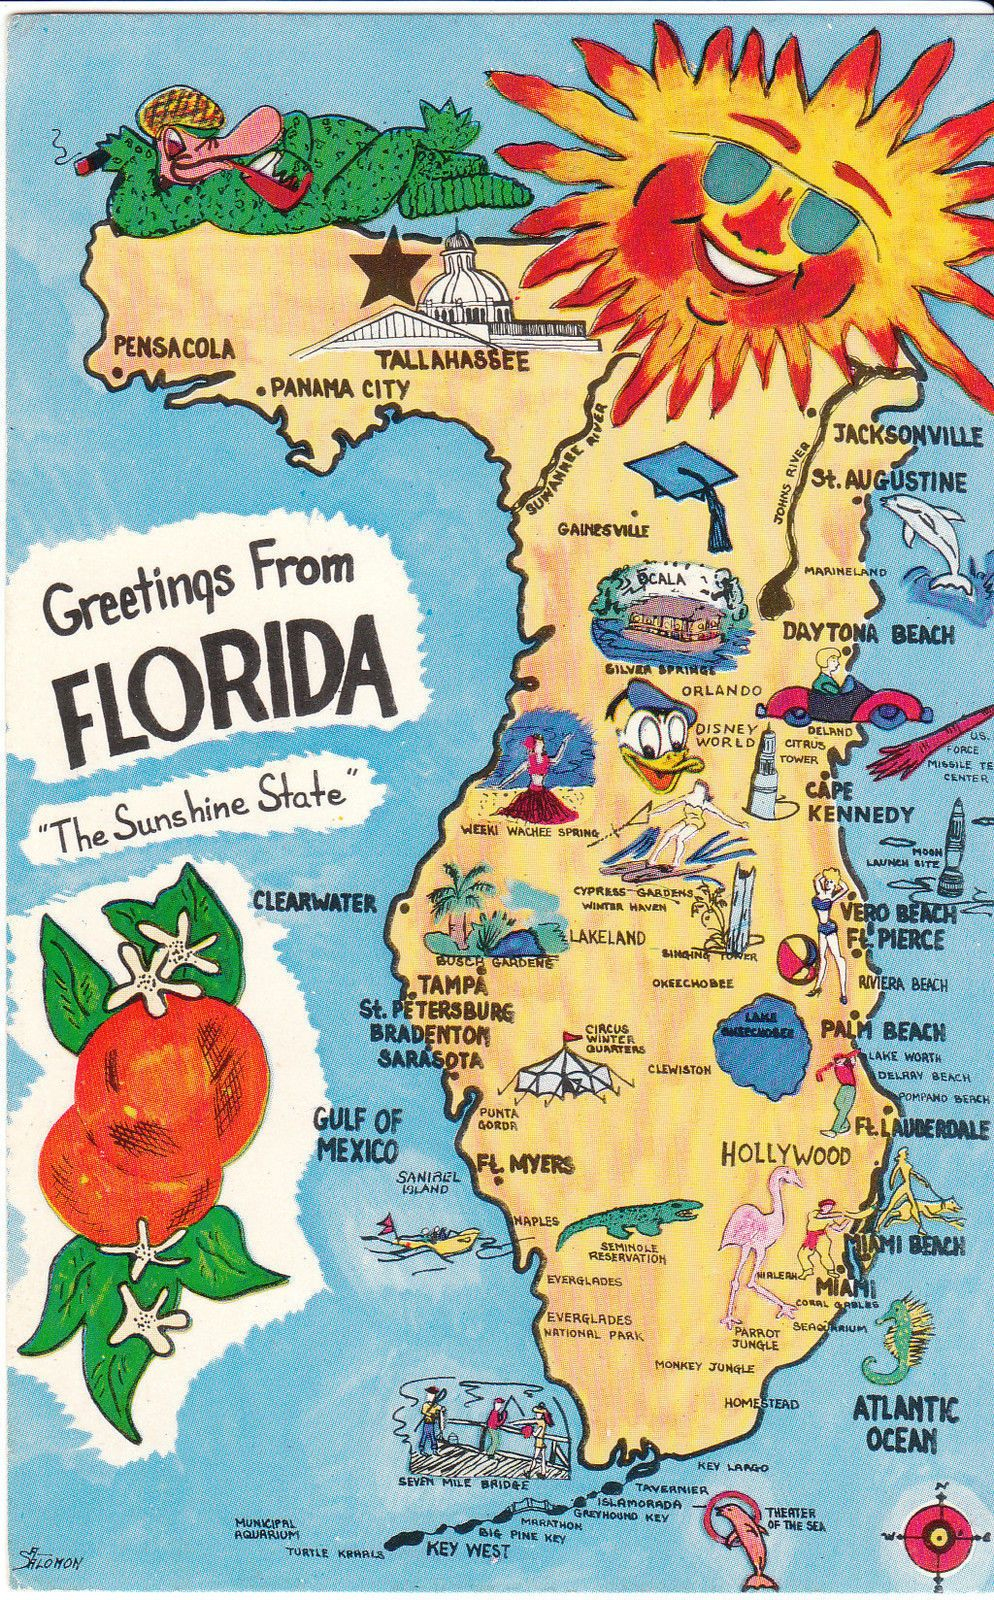 Vintage Florida Map | Graphic Design Styles | Pinterest | Vintage - Vintage Florida Map